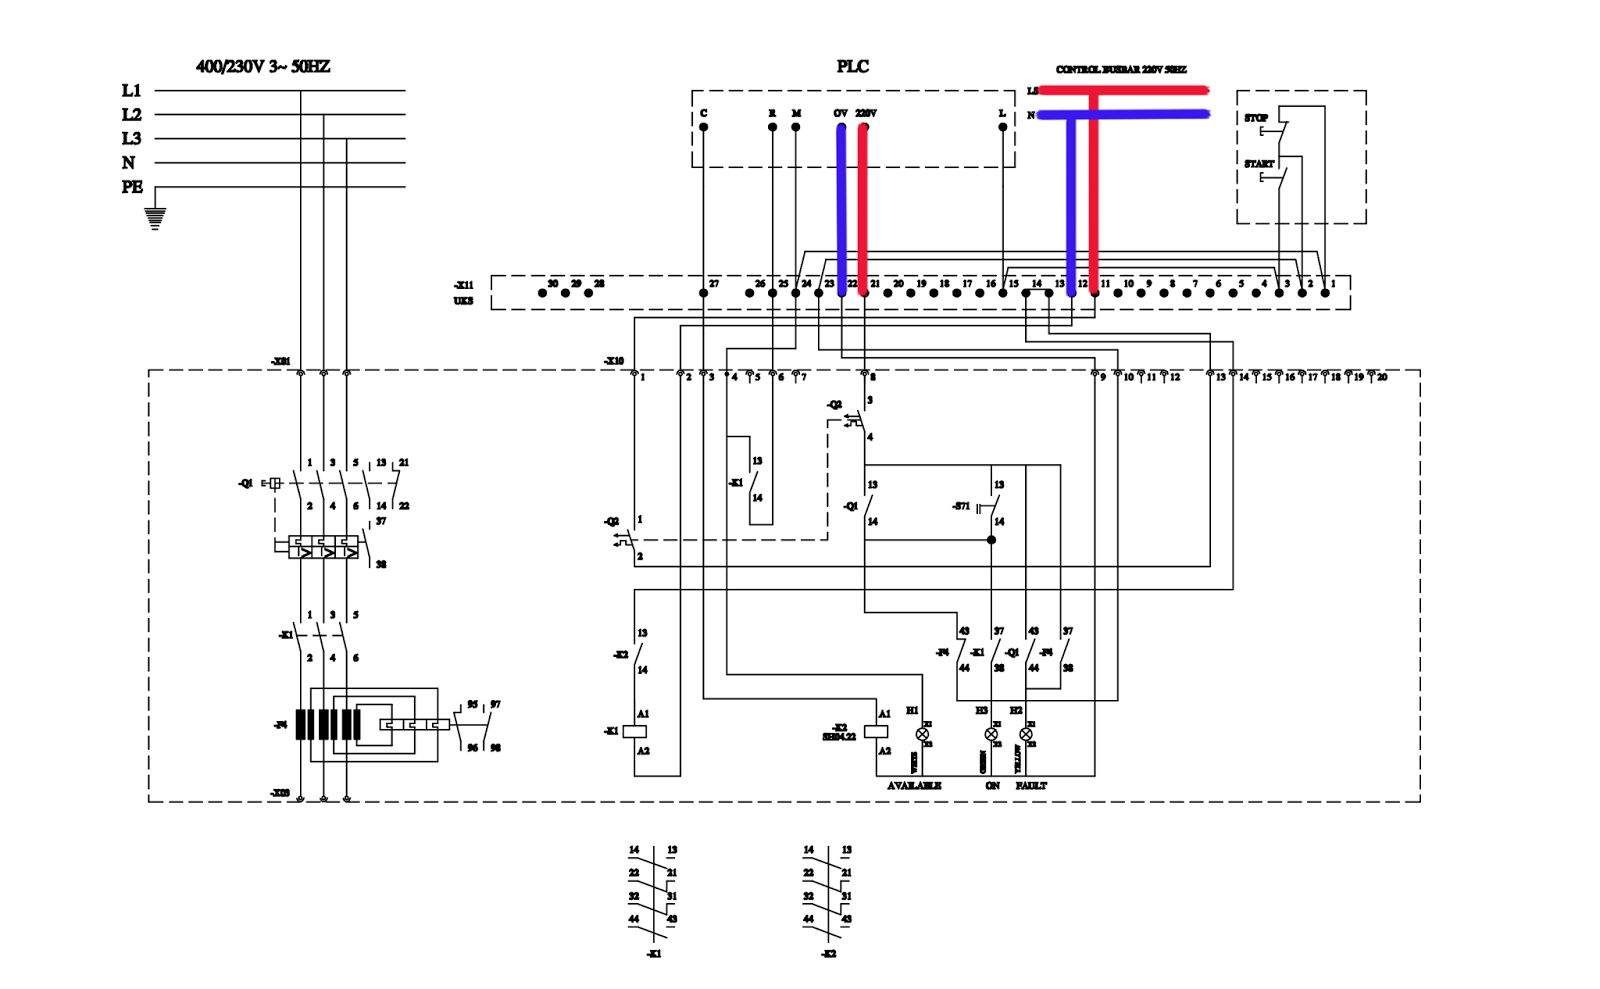 single line wiring diagram plc single discover your wiring mcc panel wiring diagram dyna s ignition system